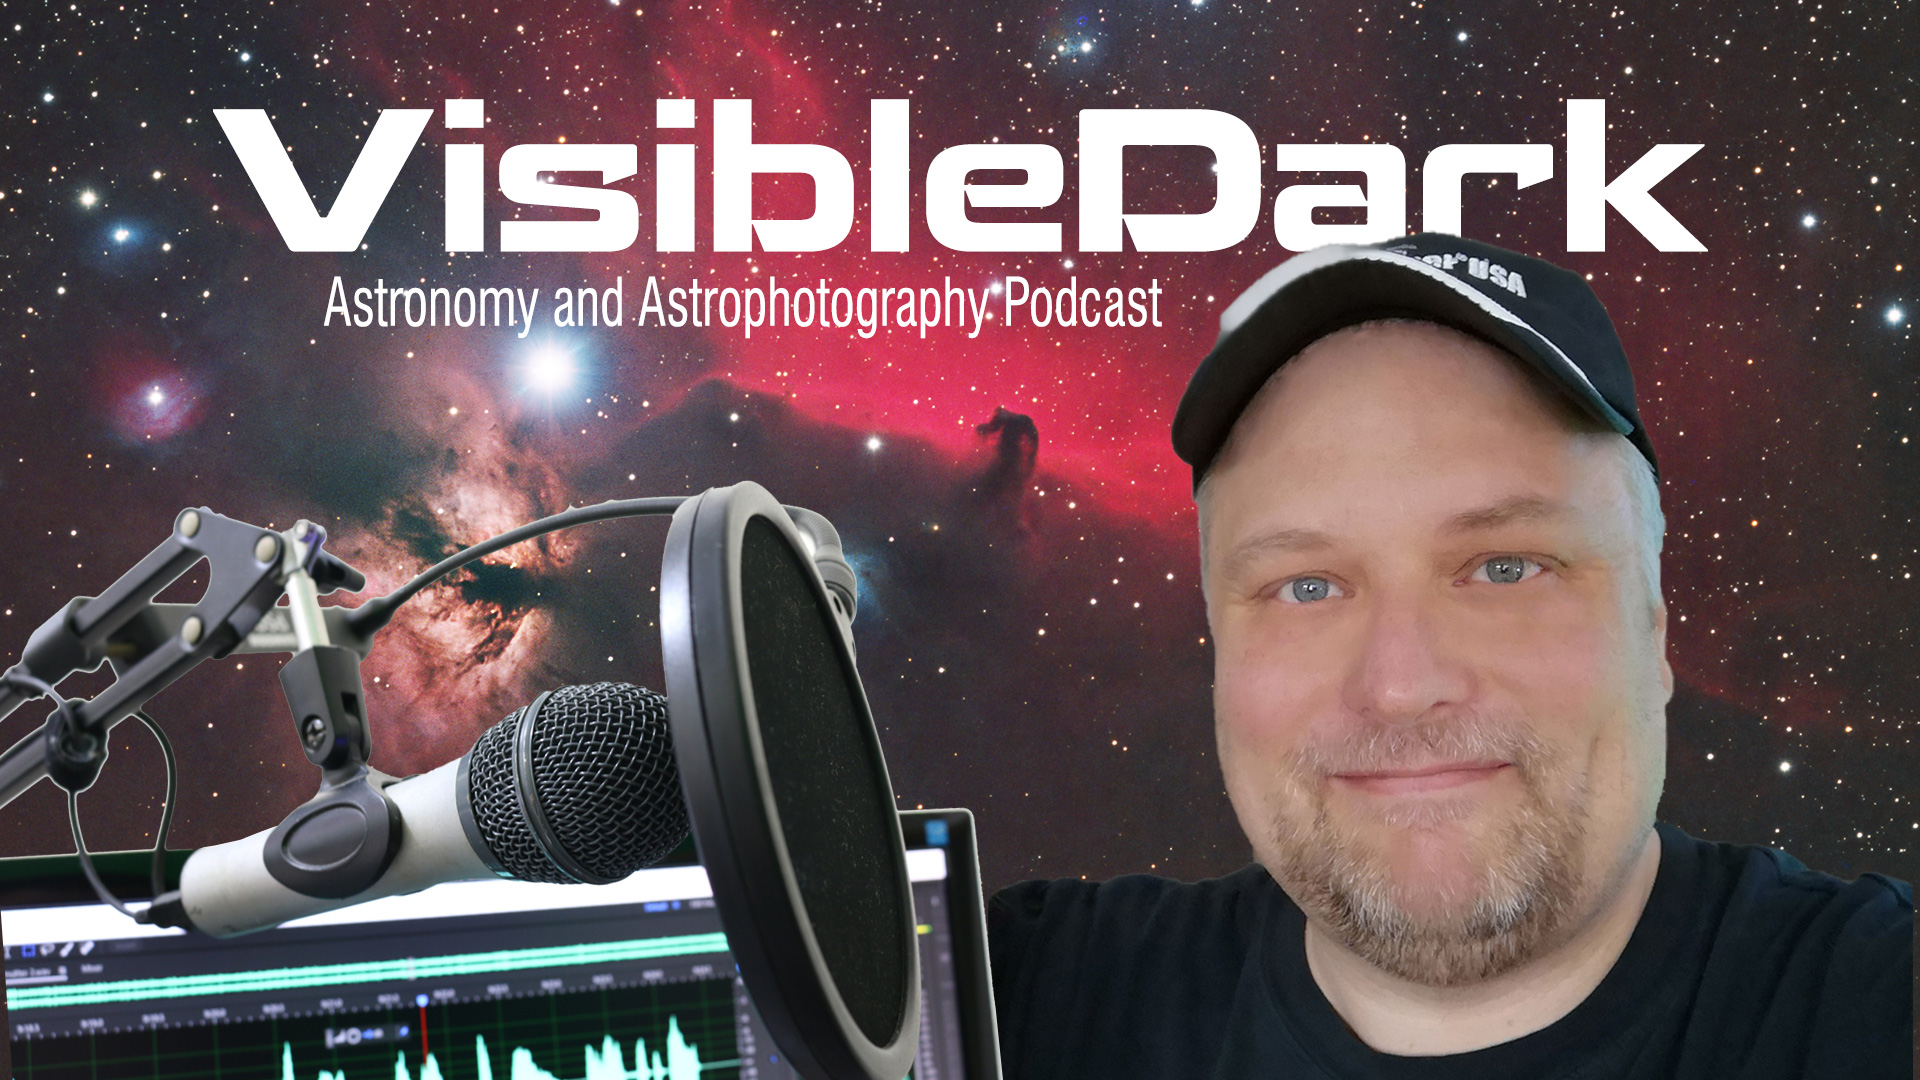 Visibledark Podcast